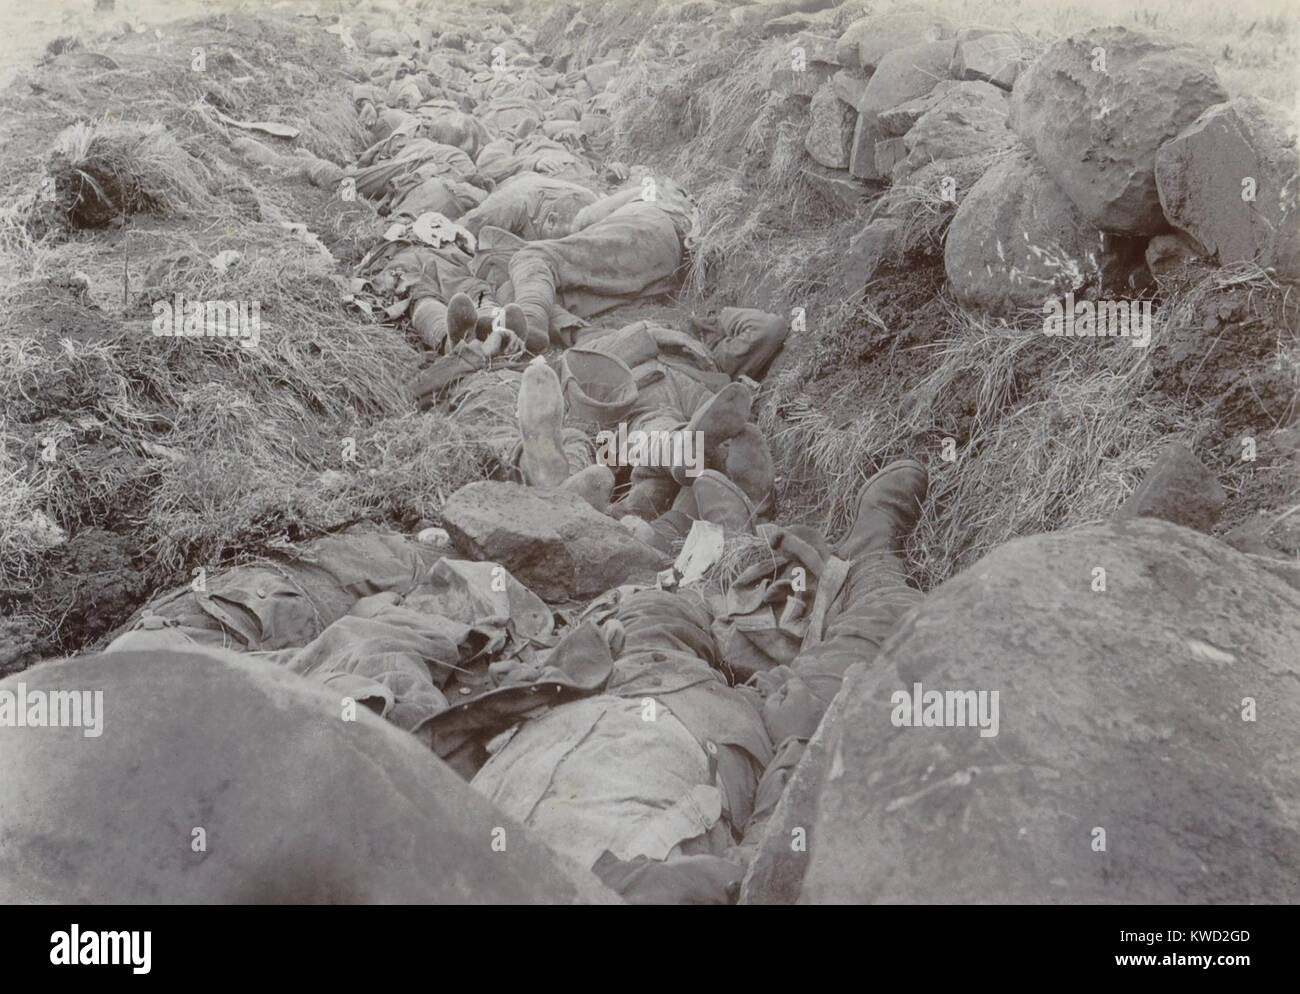 British soldiers lie dead in their shallow trench after the Battle of Spionkop, Jan. 23-24, 1900. They were part Stock Photo